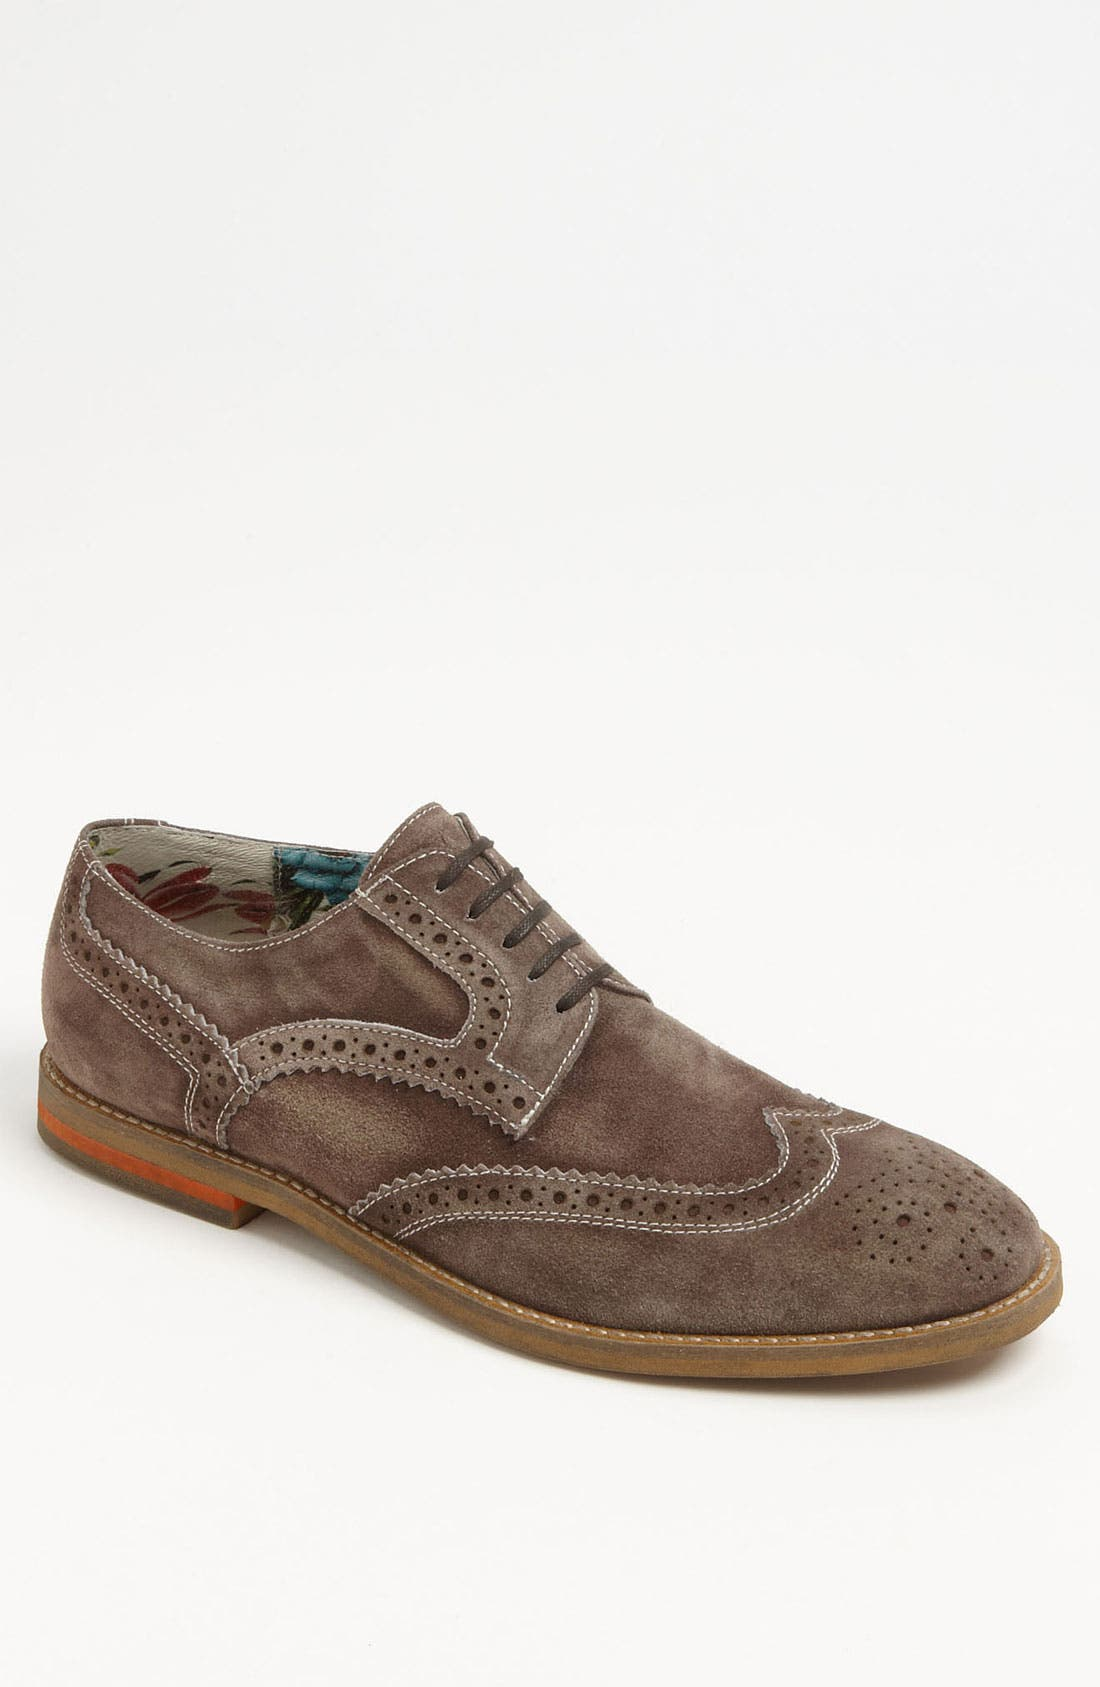 Alternate Image 1 Selected - Vince Camuto 'Veneto' Suede Wingtip